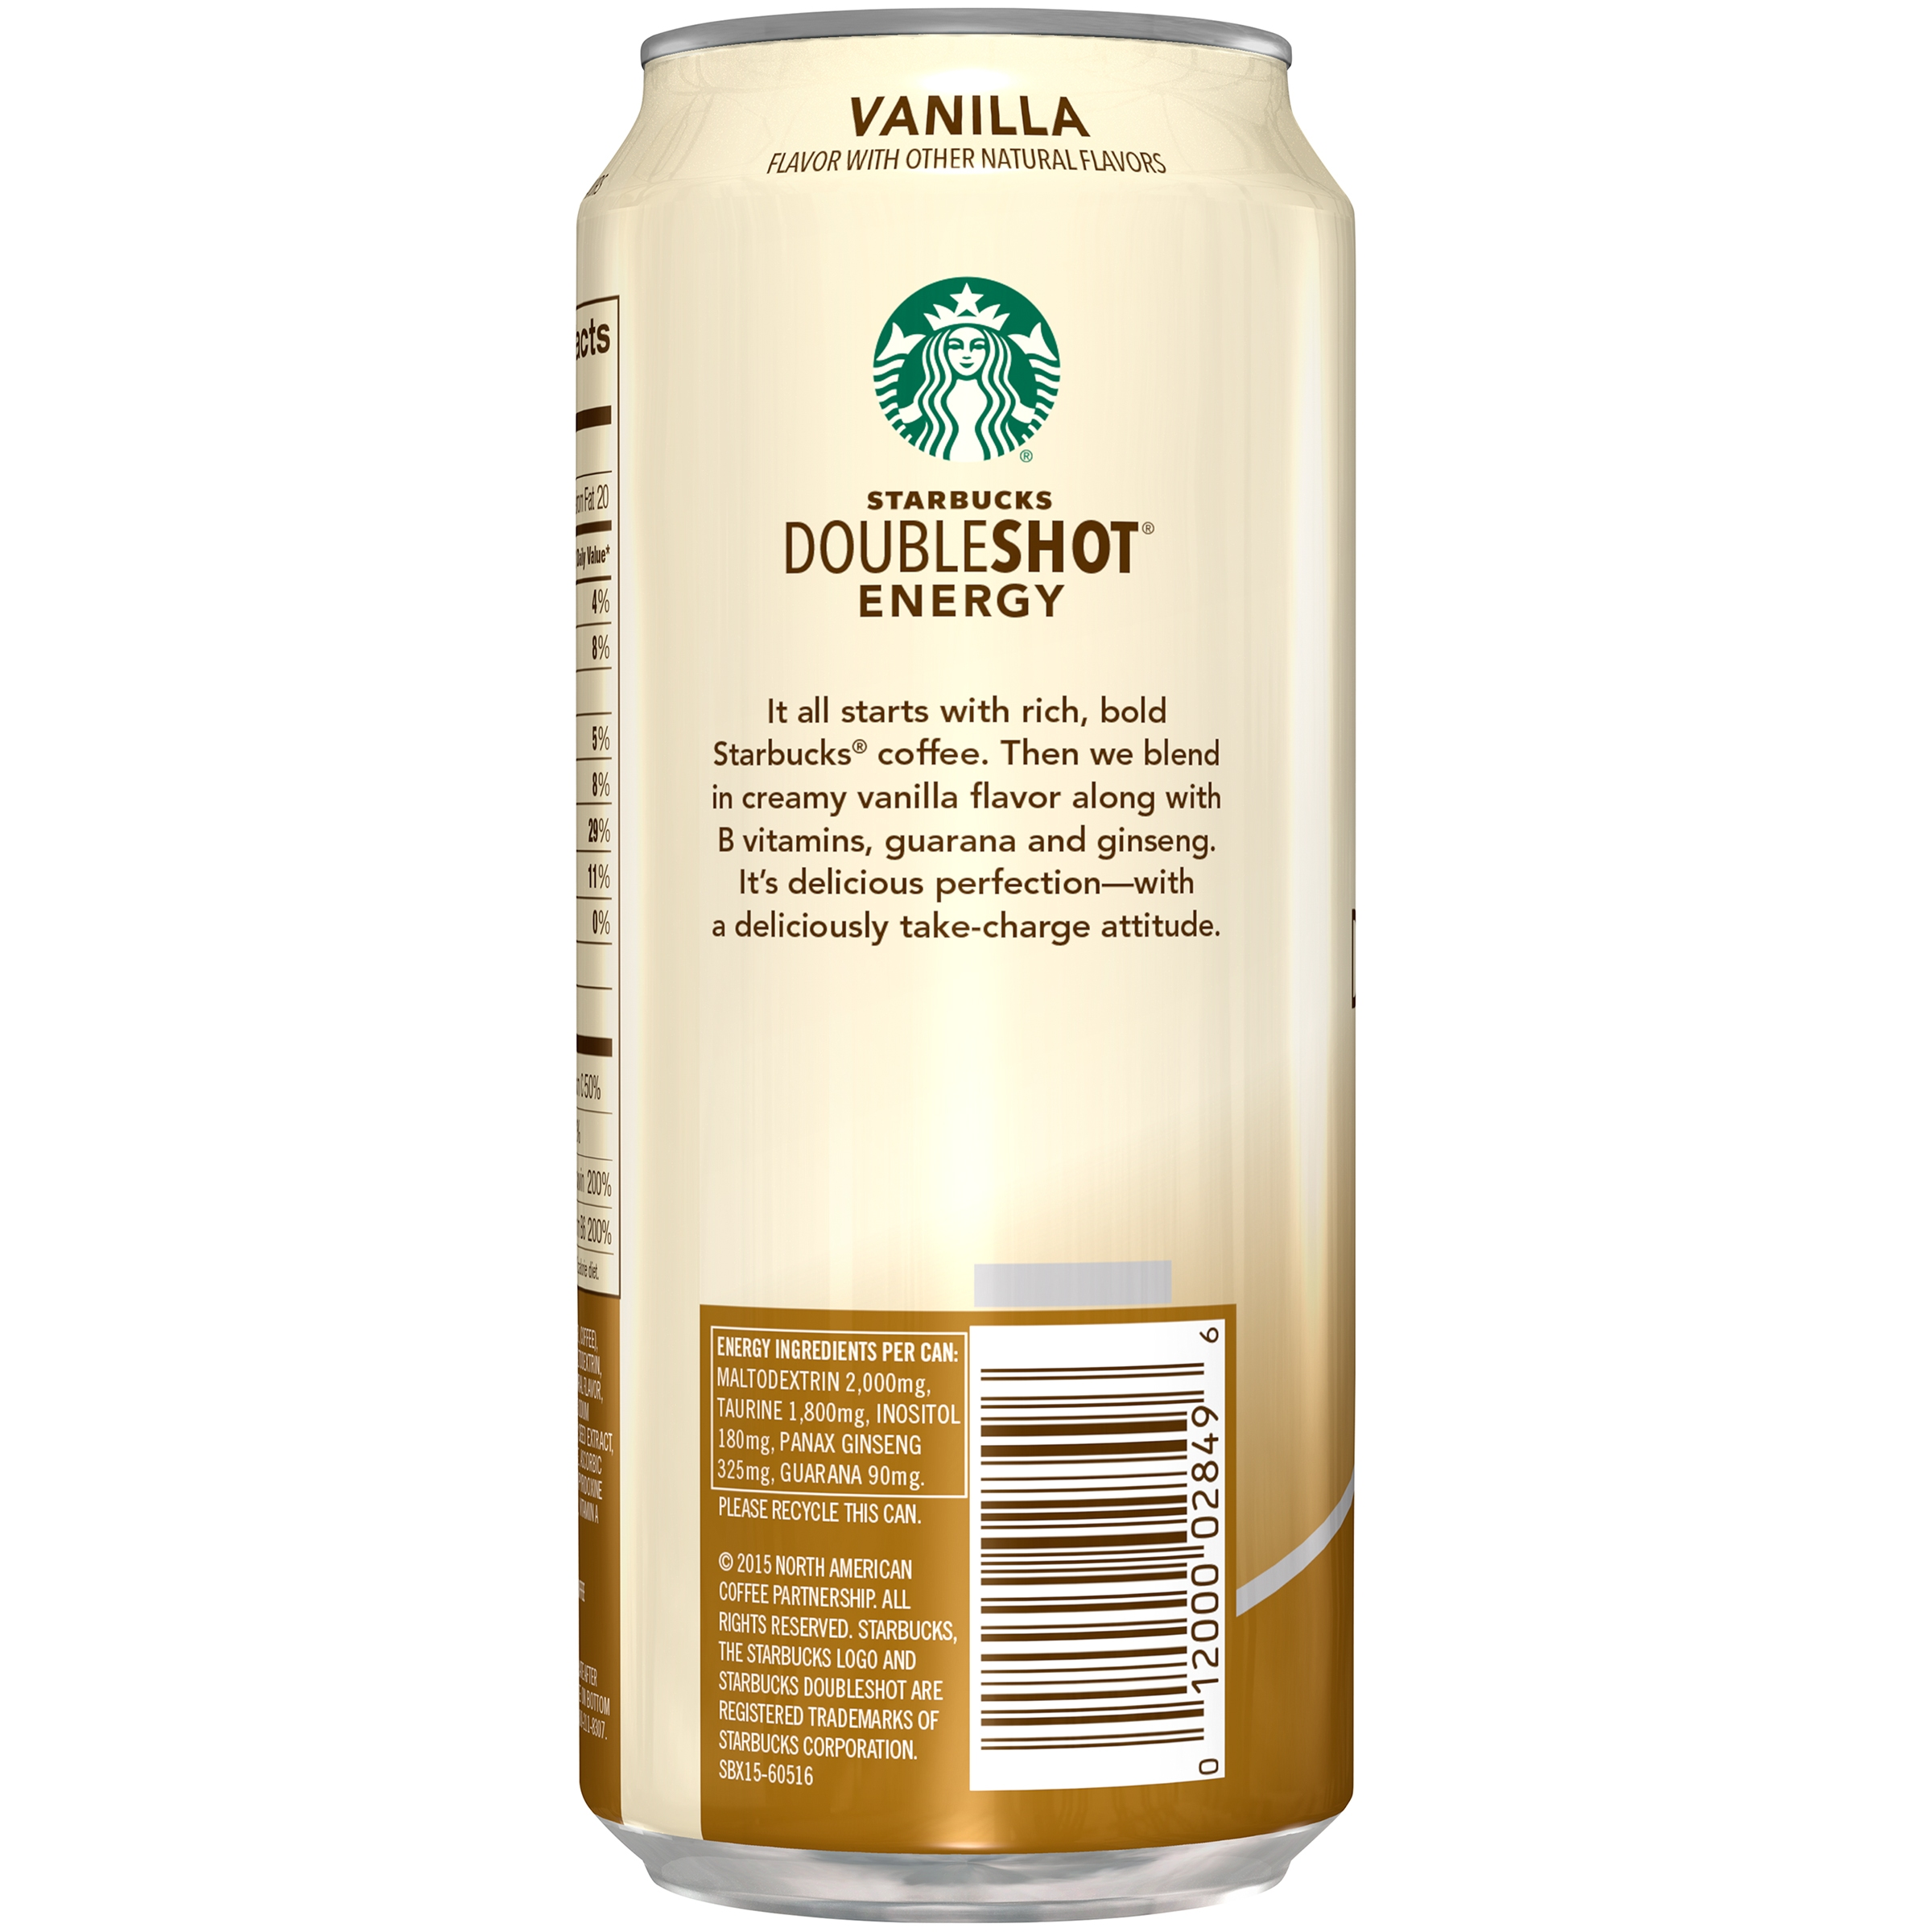 Starbucks Doubleshot Energy Vanilla Energy Coffee Beverage 15 Fl Oz